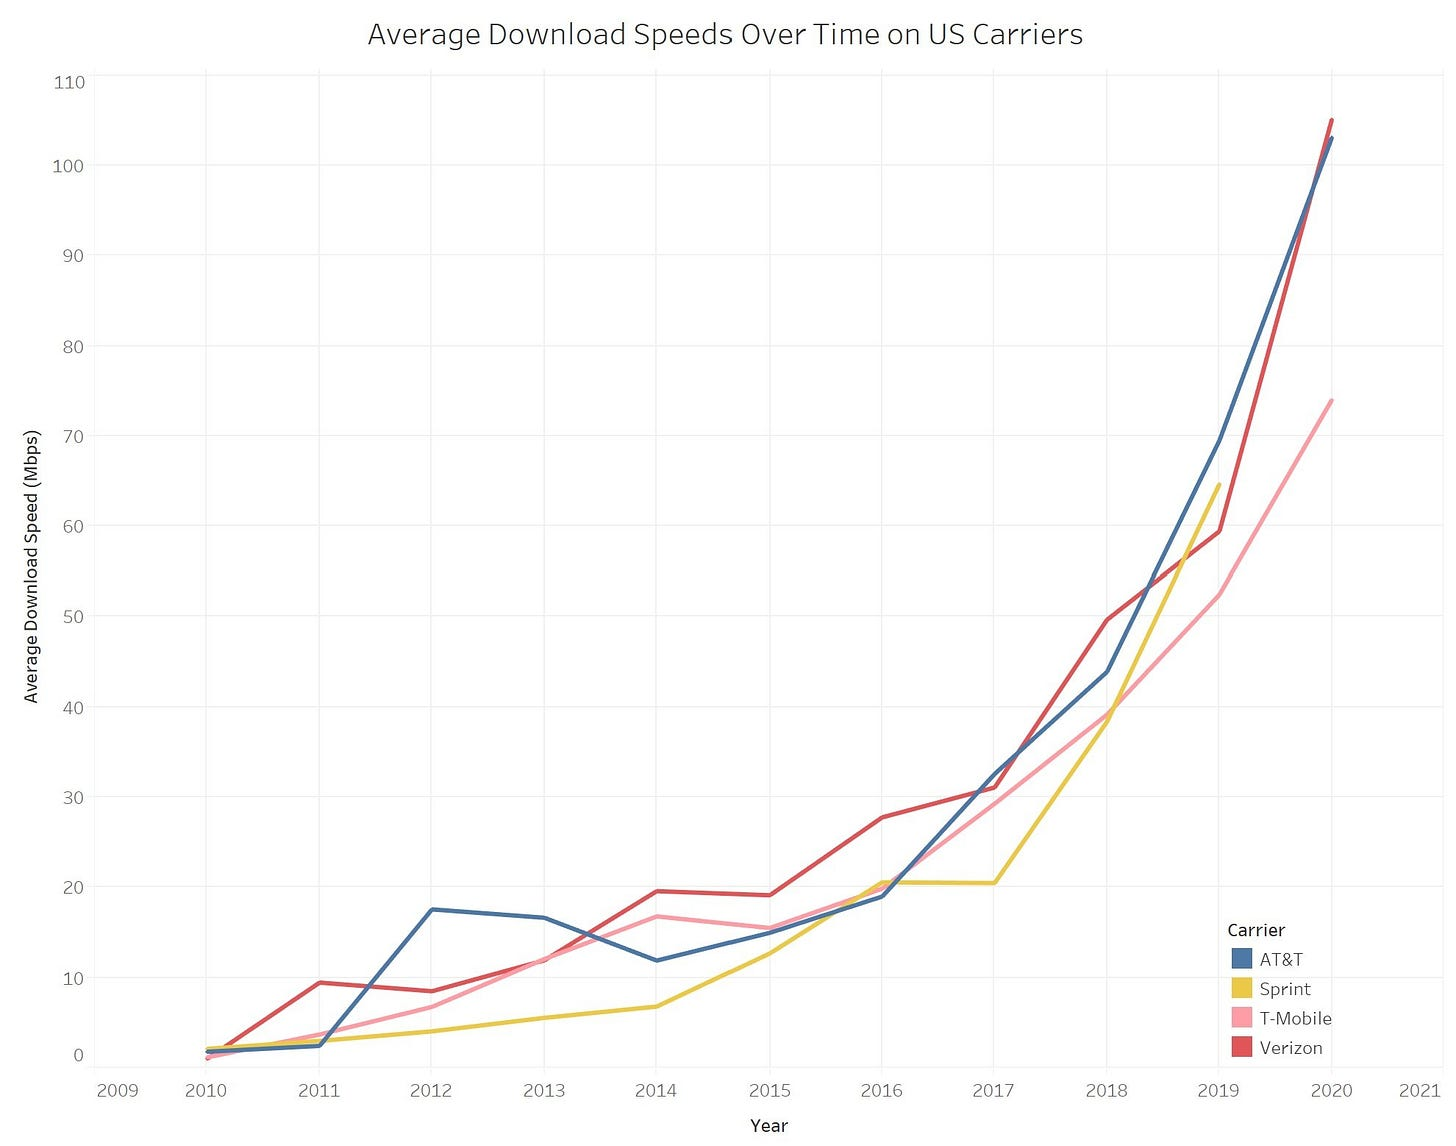 Download speeds by major carriers over 10 years